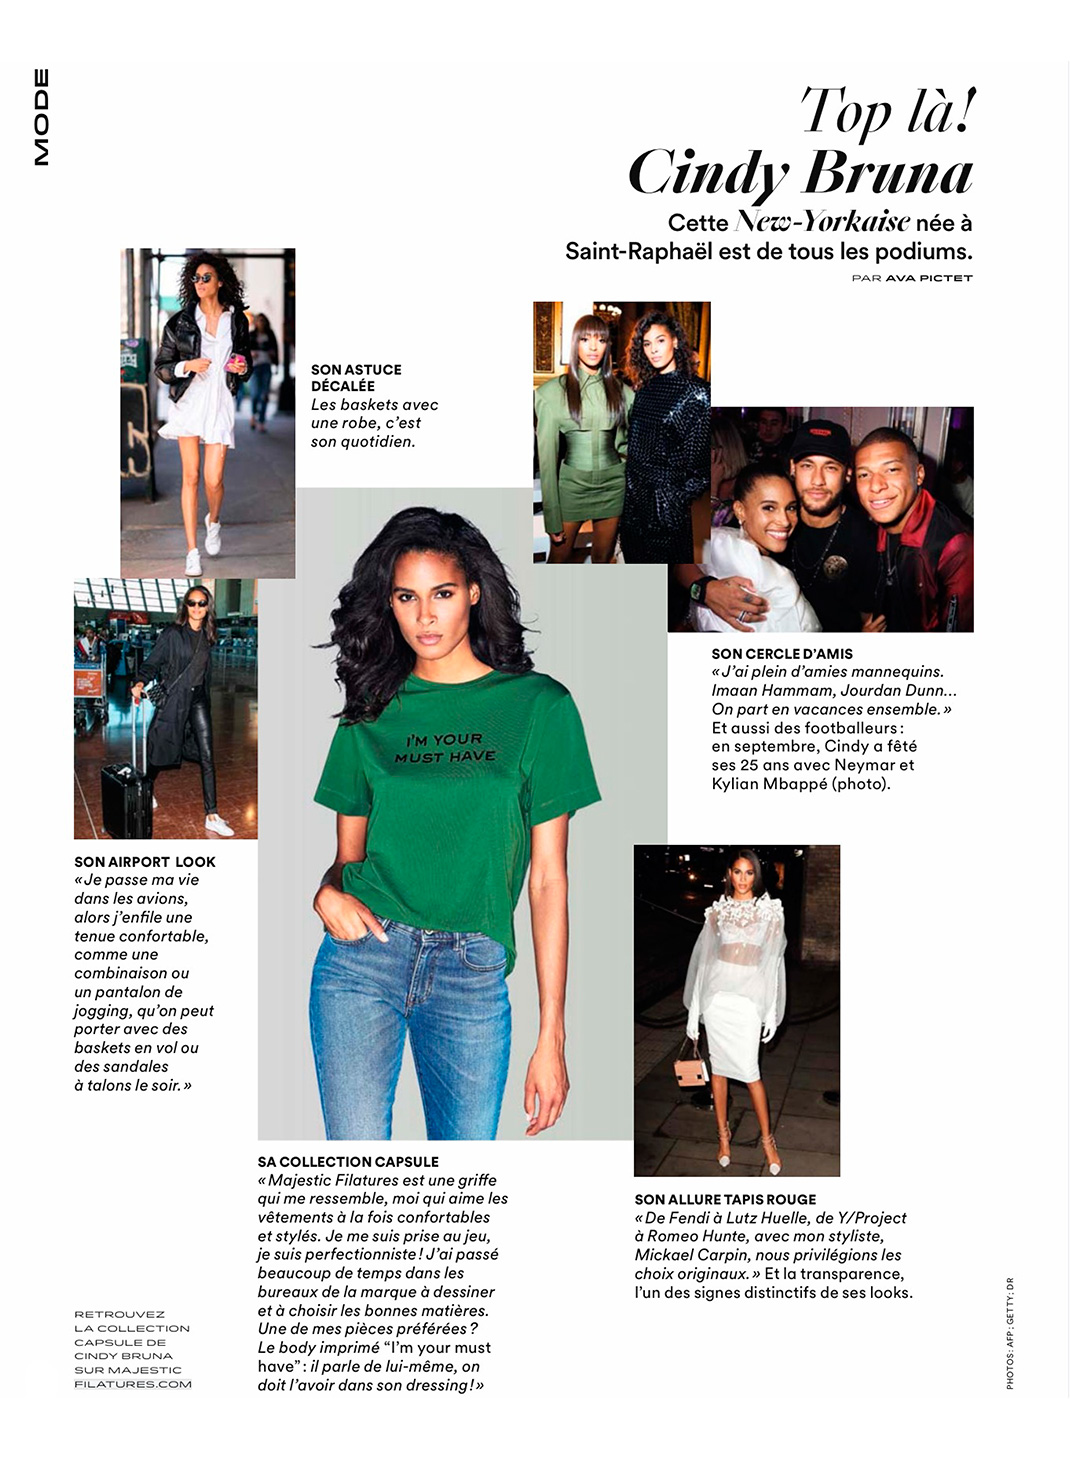 Grazia - Top là ! Cindy Bruna